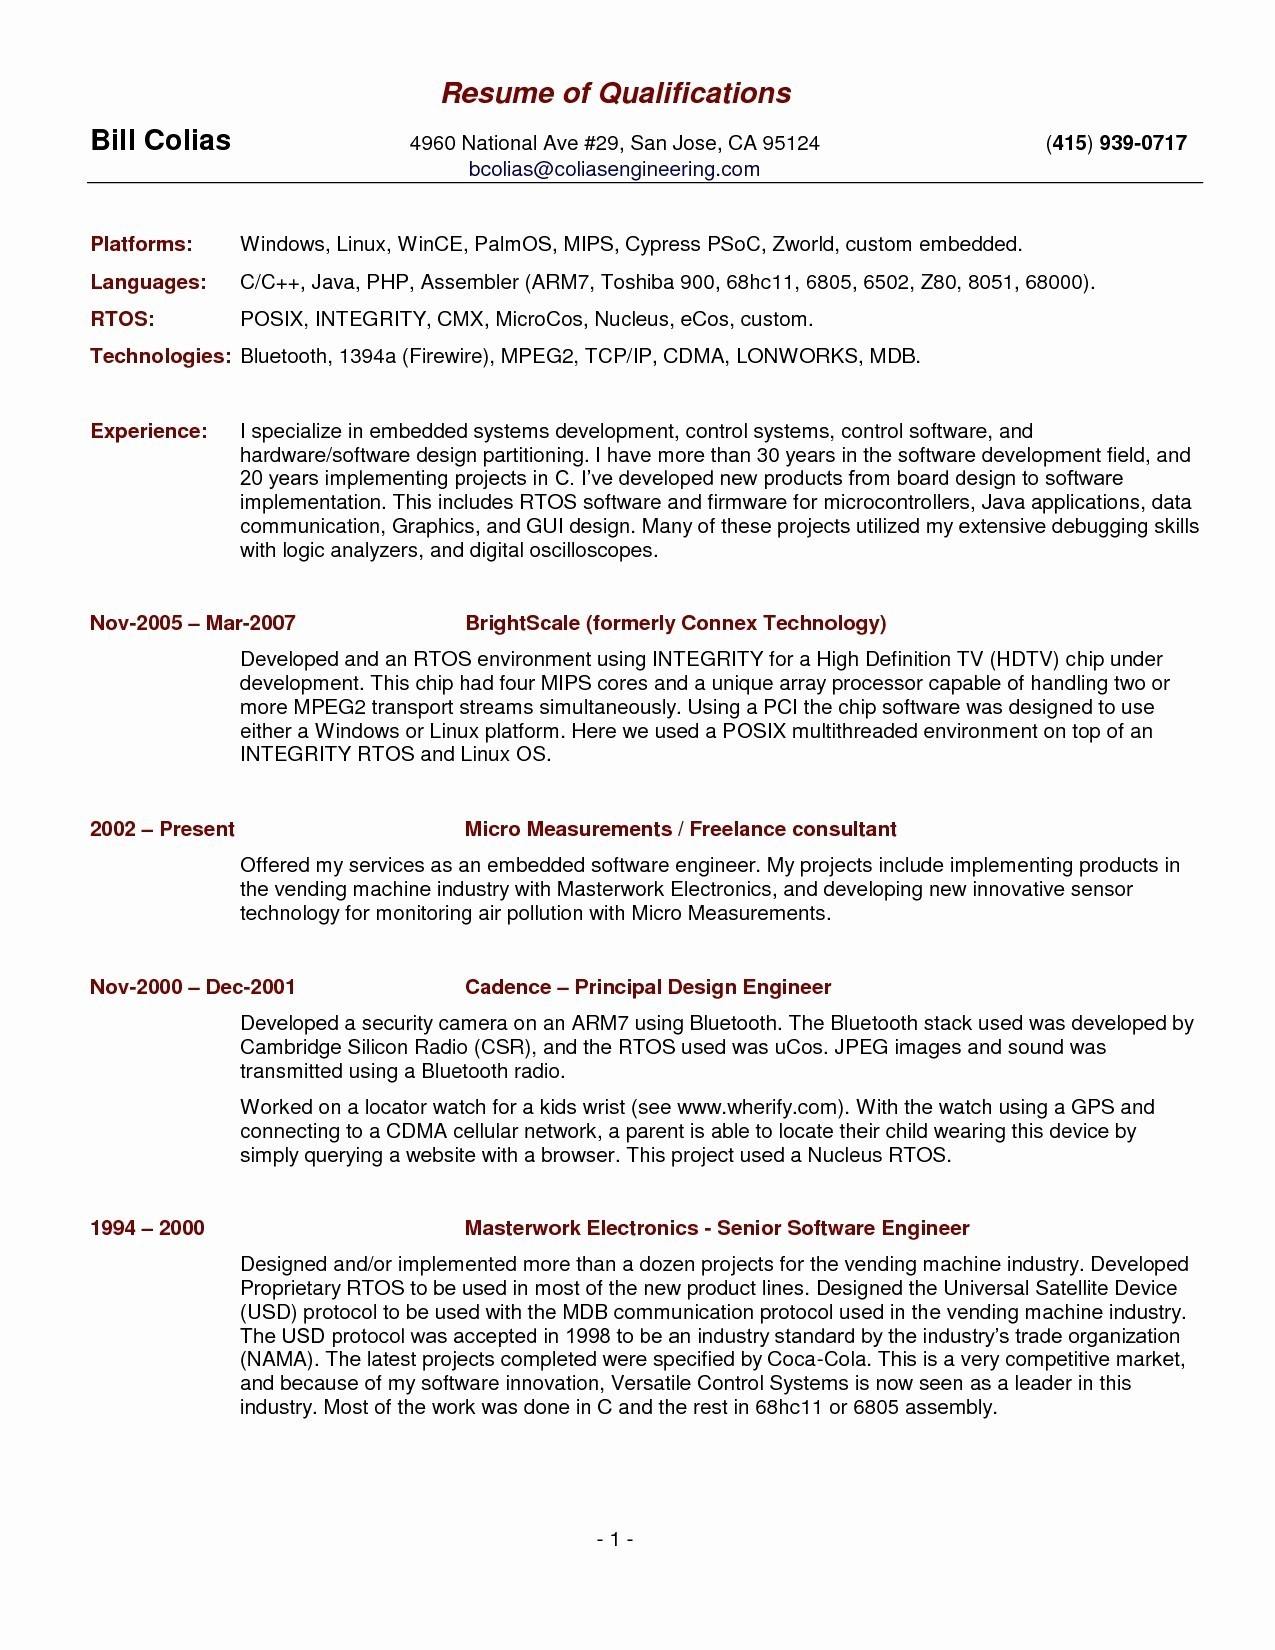 Mba Resume Examples - Mba Resume Template Awesome Free How to Make Resume format Gallery